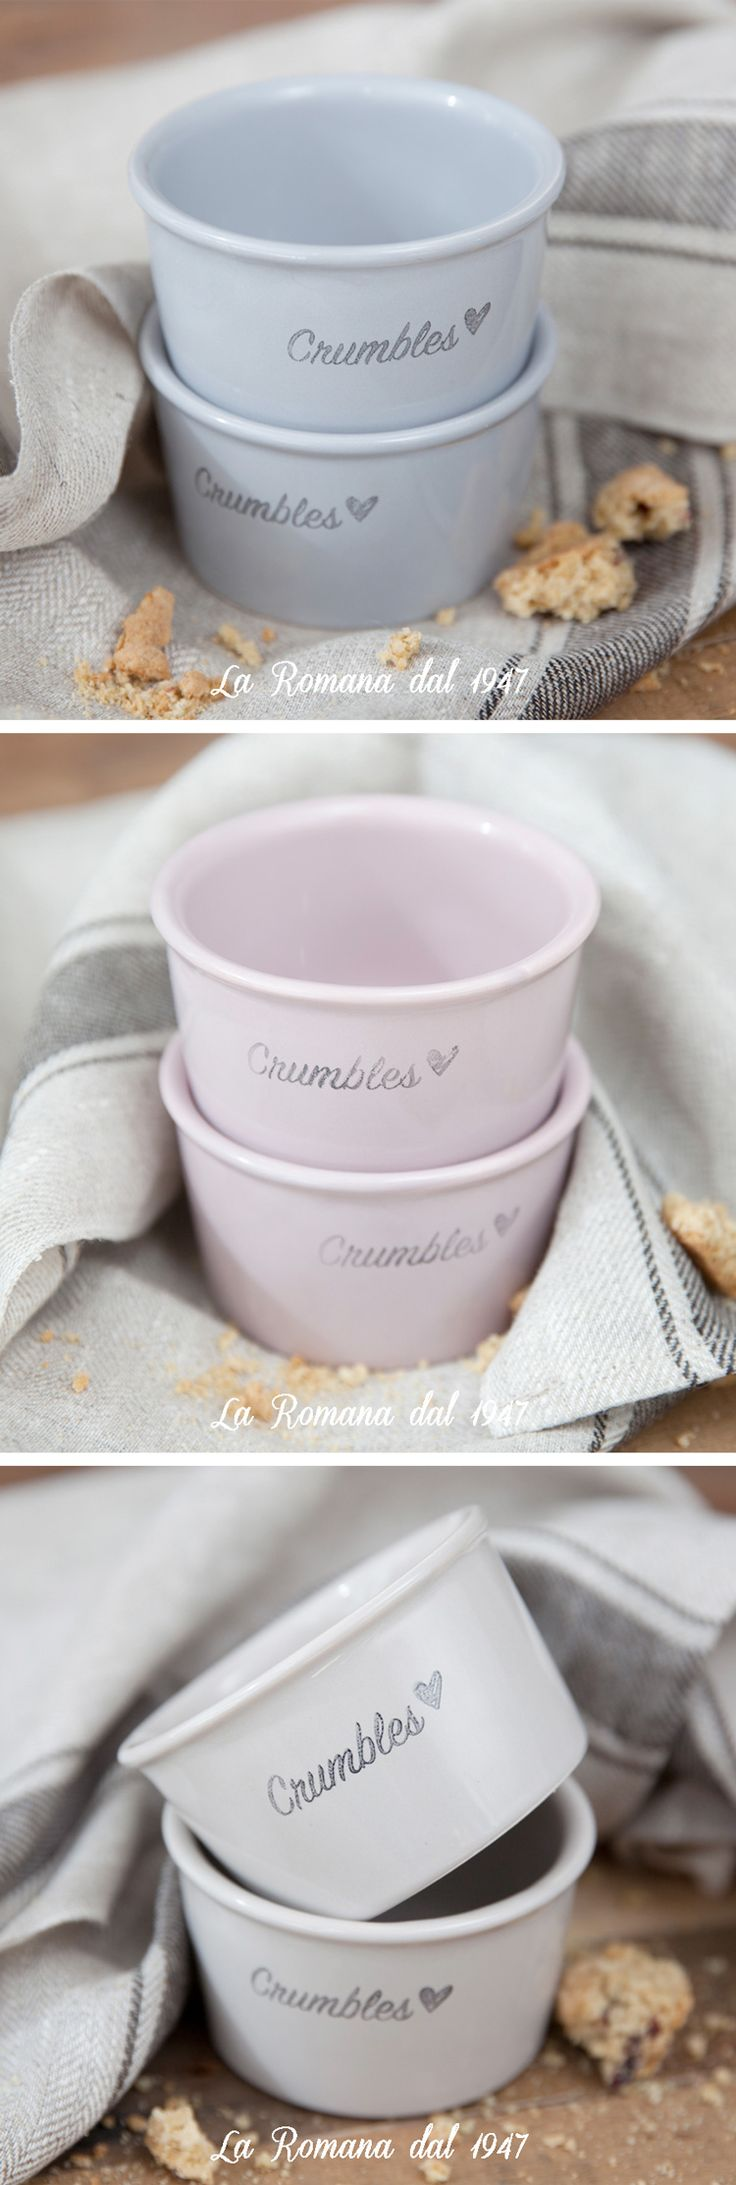 The limited edition 2016 of Crumbles cups from Gelateria La Romana.